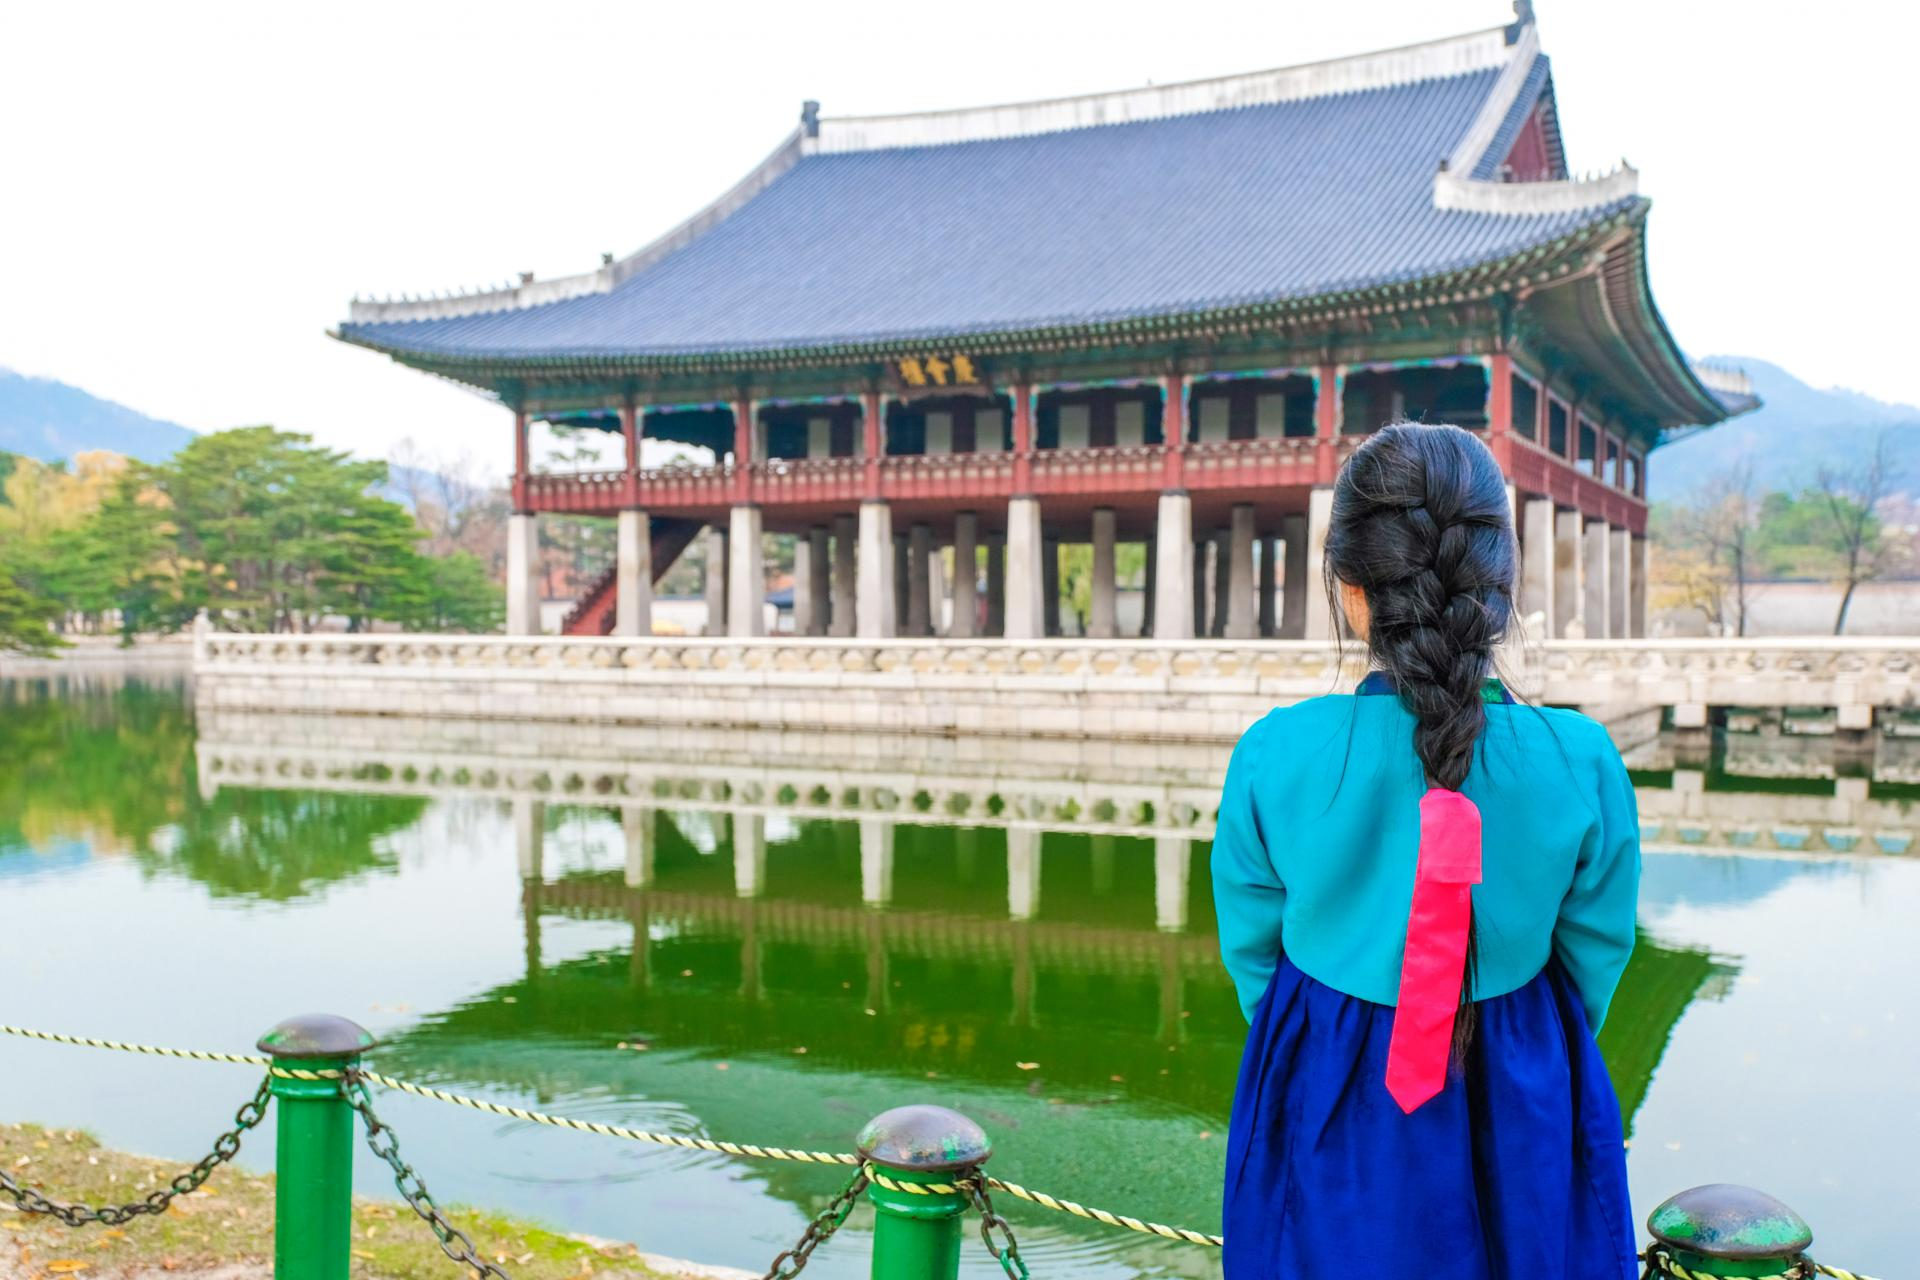 Oneday Hanbok Rental